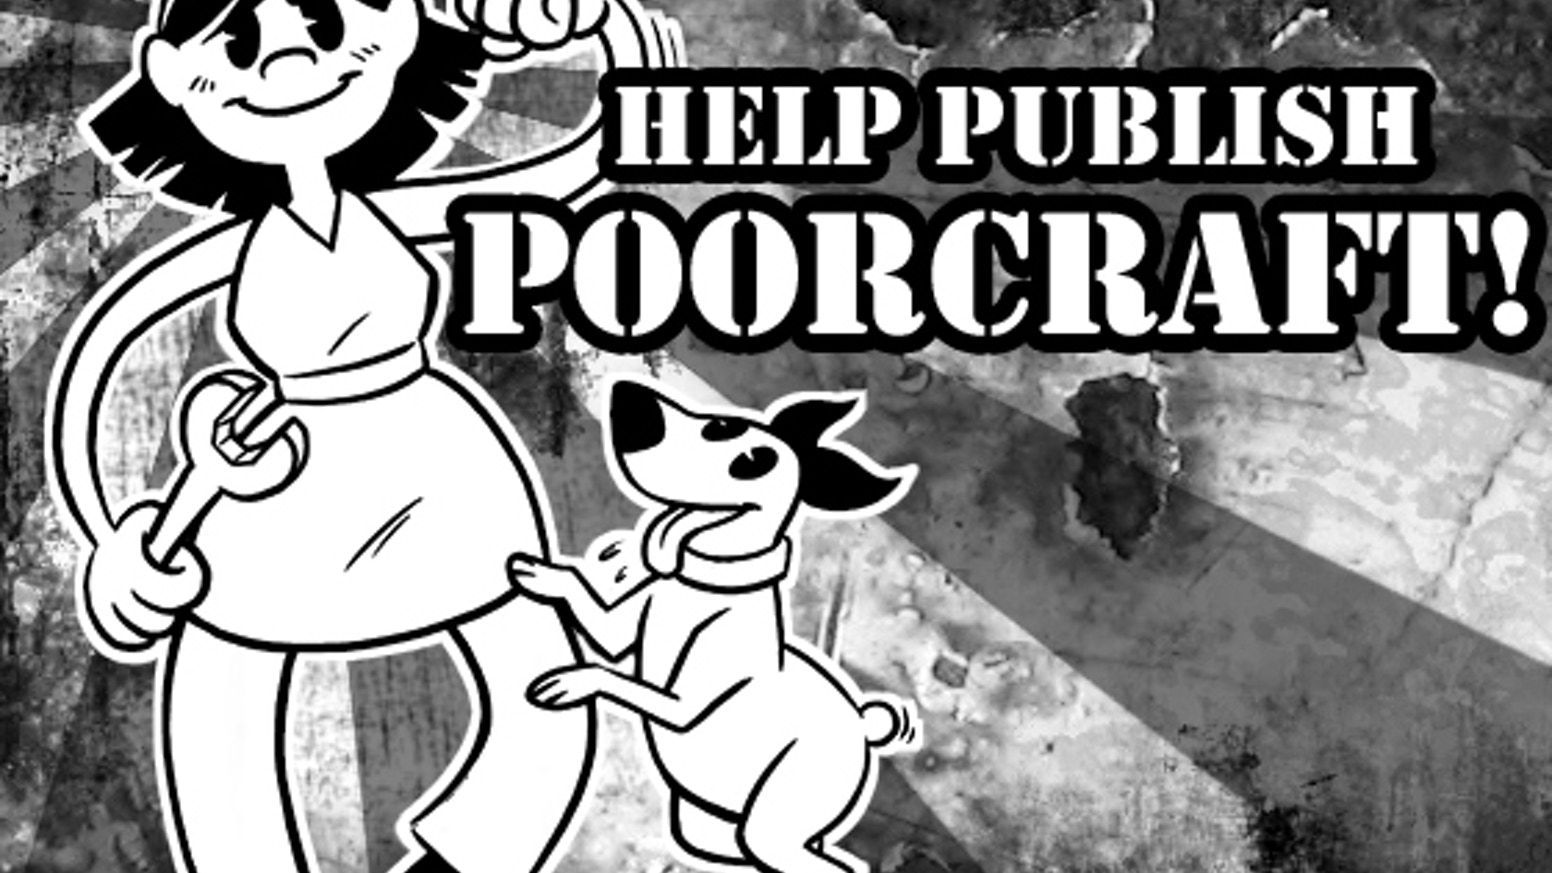 Poorcraft is the ultimate comic book guide to living well on less. It covers everything from cooking to apartment-hunting, roommates to health care, boring Saturday nights to attending college debt-free. And it's available now from Iron Circus Comics!